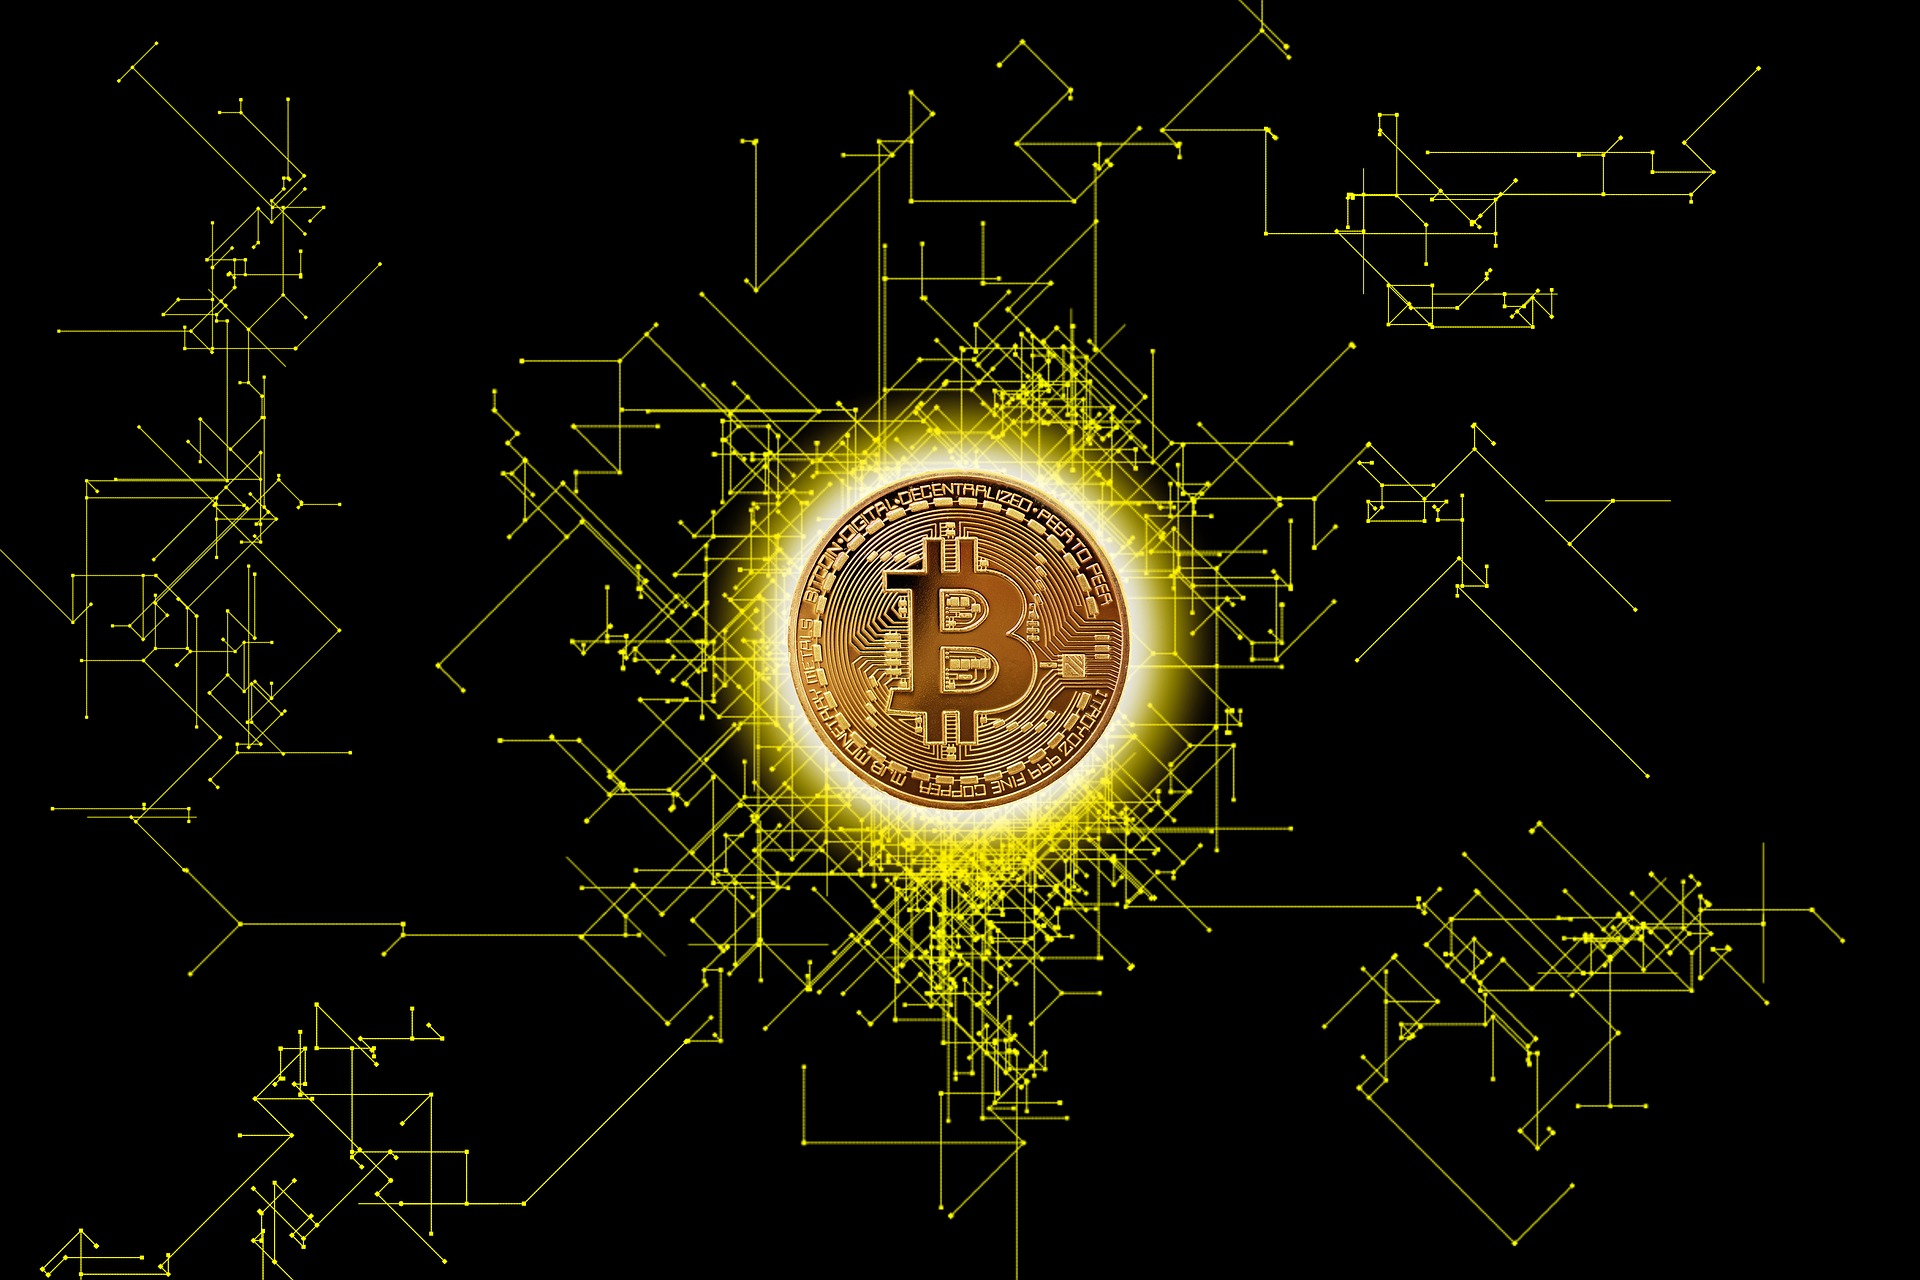 Image: A bitcoin on a black background